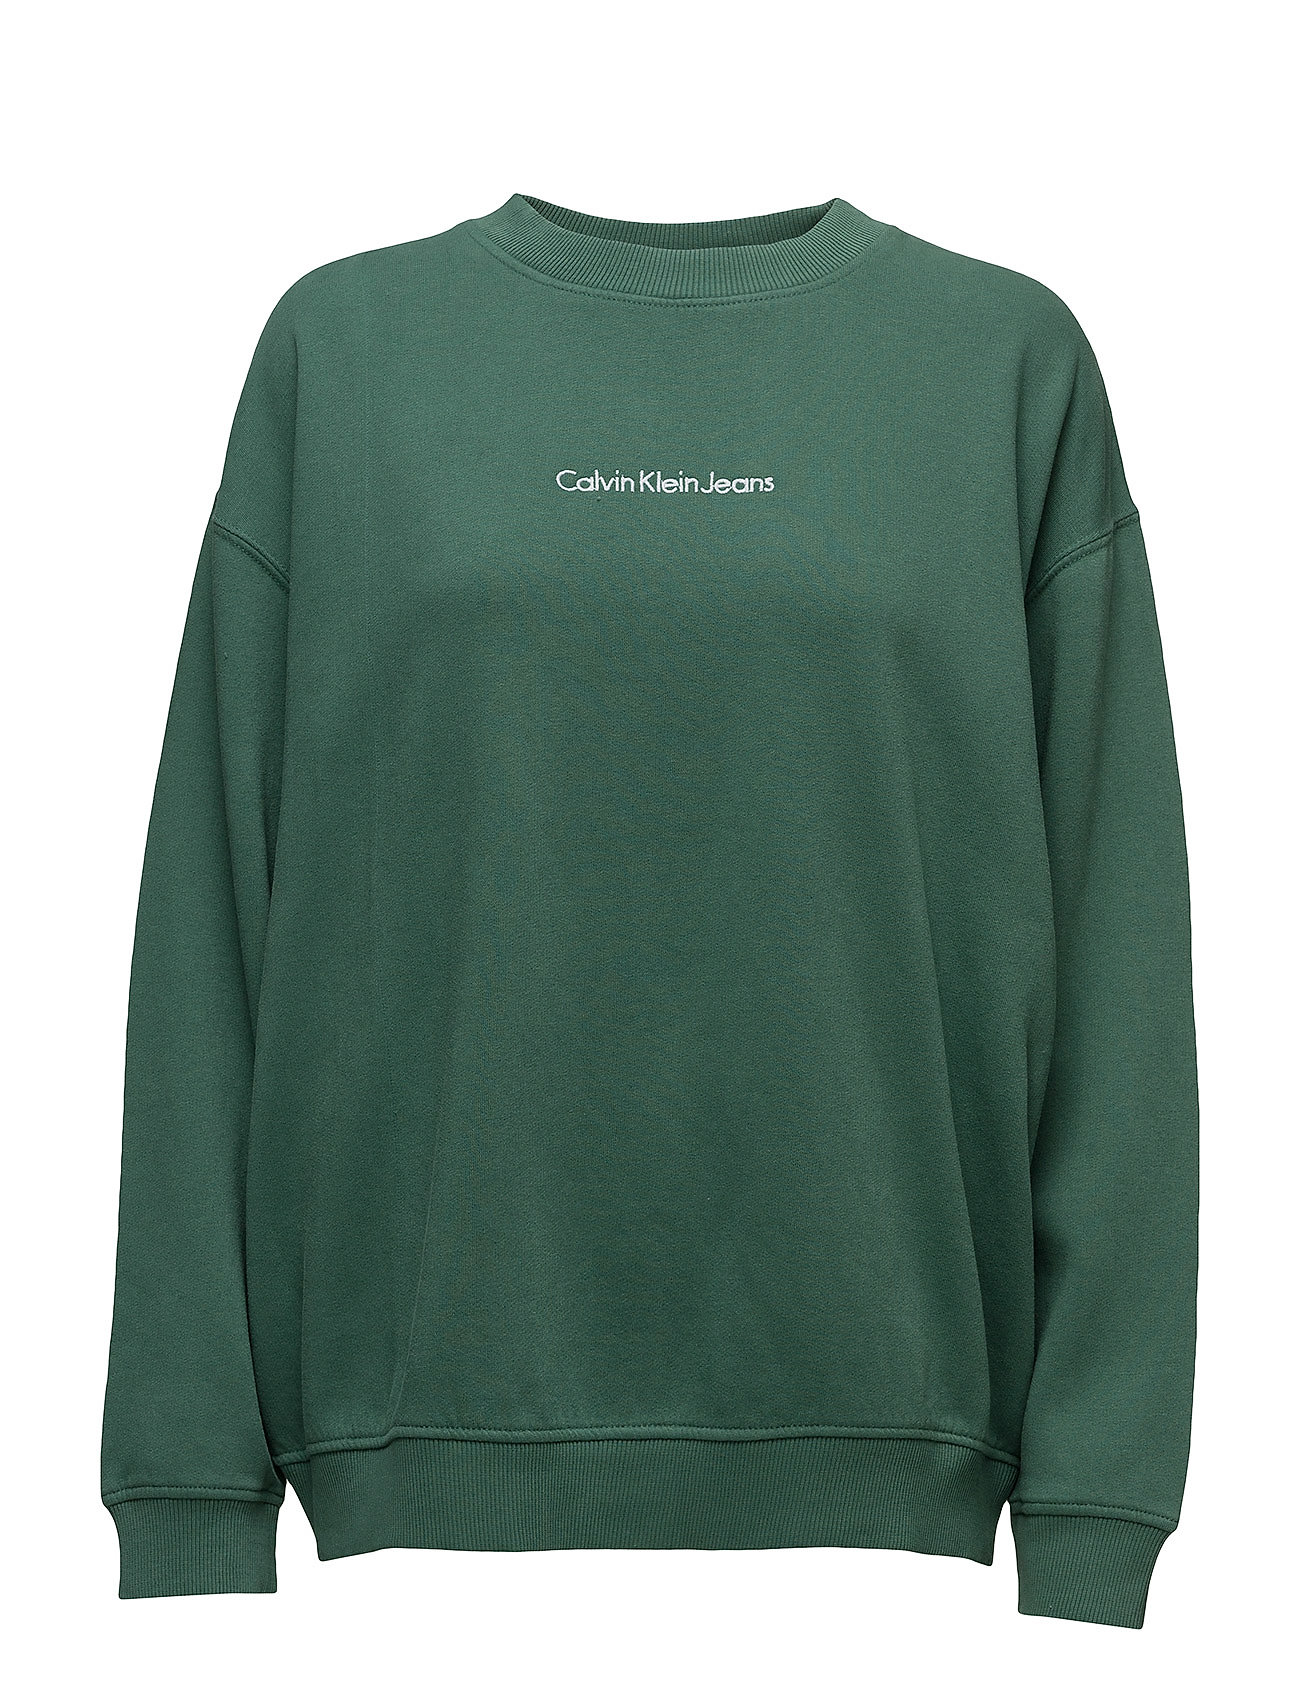 Calvin Klein Women's Hilary Cn HWK L/s Sweatshirt Professional Cheap Price Where Can You Find Outlet Release Dates Websites Online Cheap Price Top Quality LKHW2